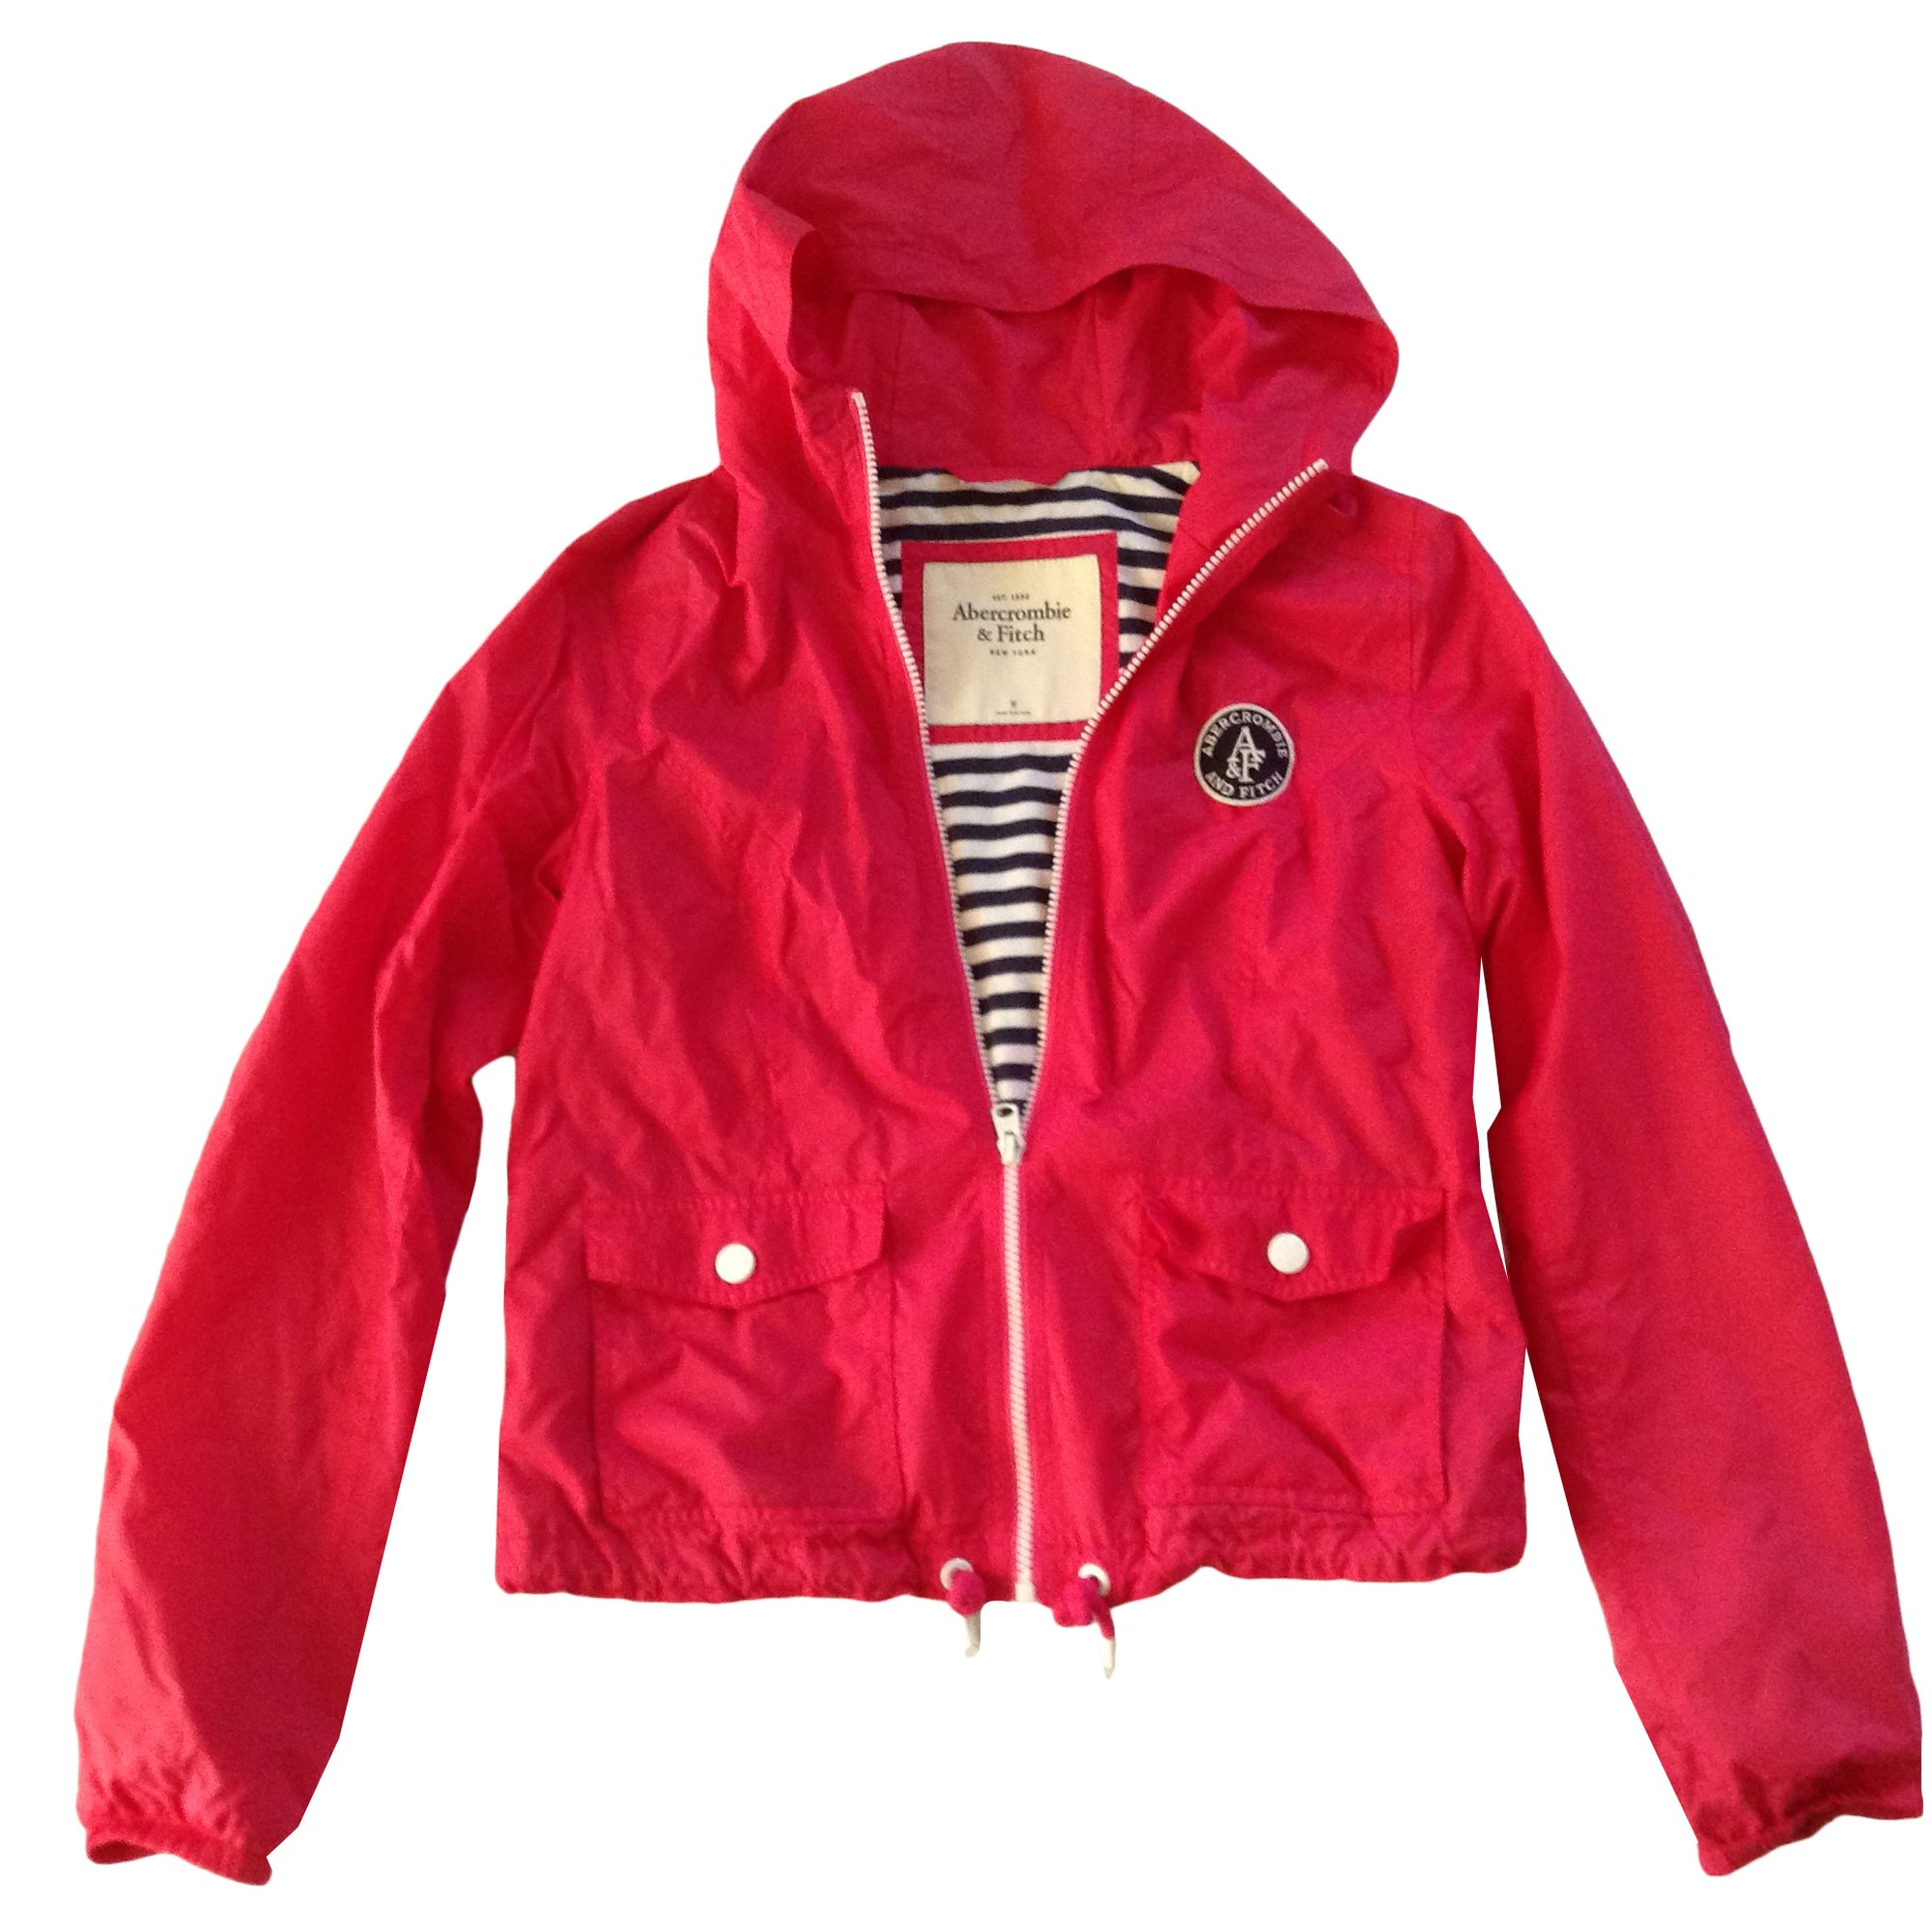 Imperméable, trench ABERCROMBIE & FITCH Rose, fuschia, vieux rose